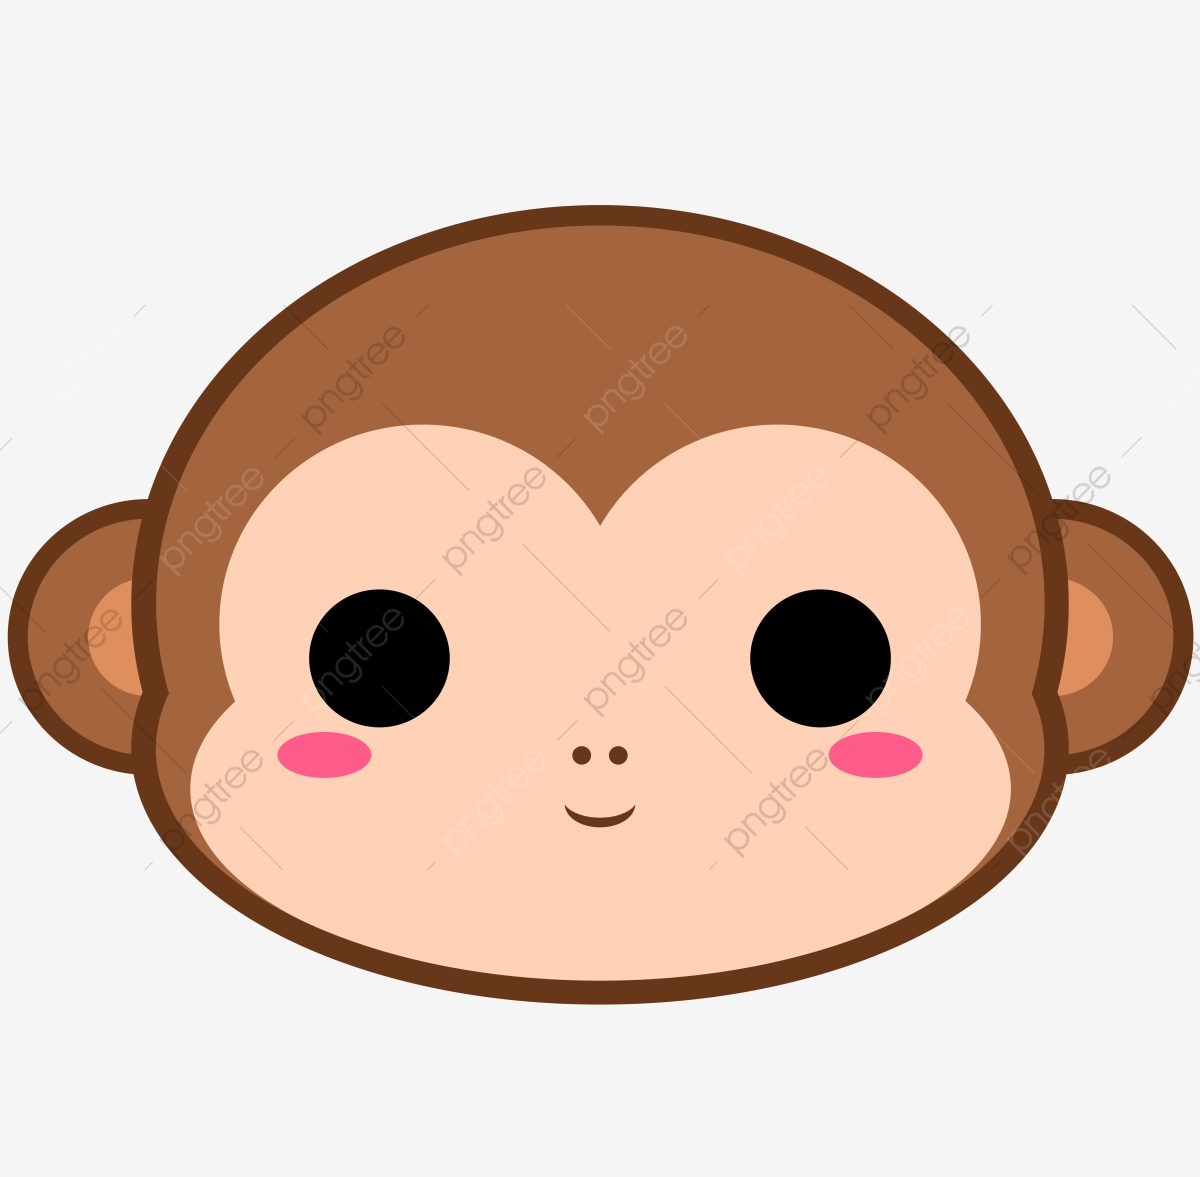 Cute Monkey Head, Monkey, Brown, Cute PNG Transparent Clipart Image.